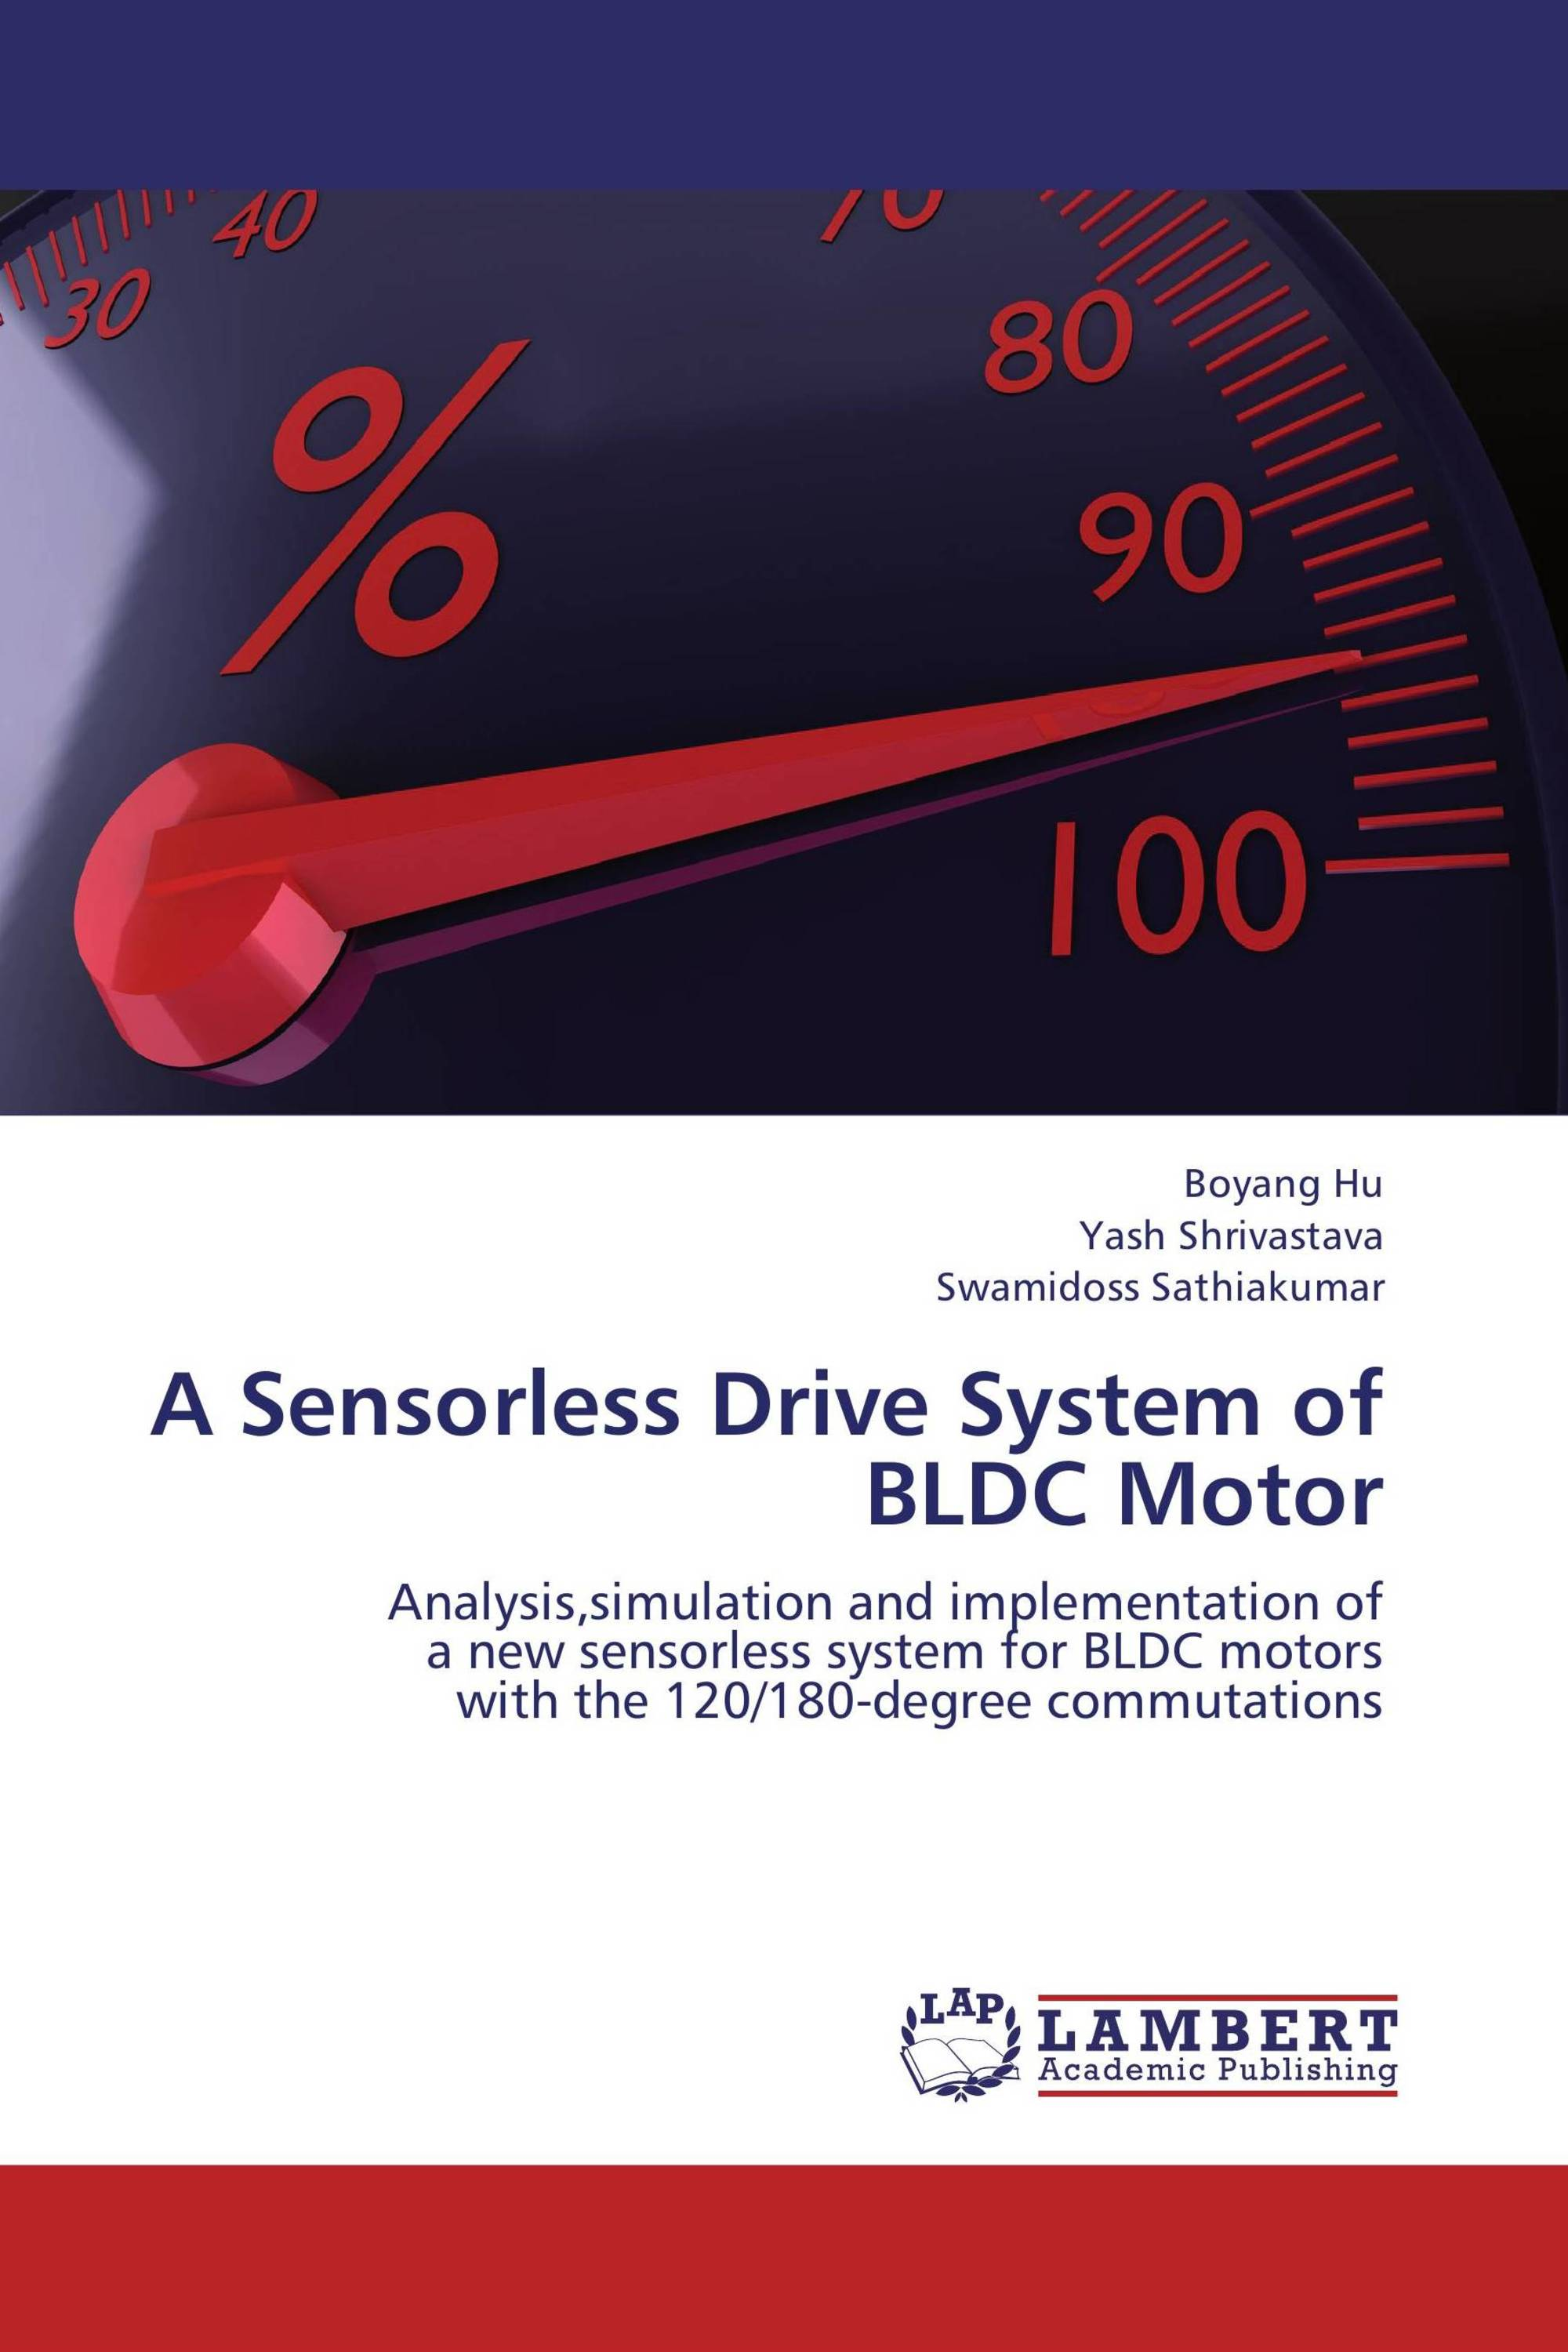 A Sensorless Drive System of BLDC Motor